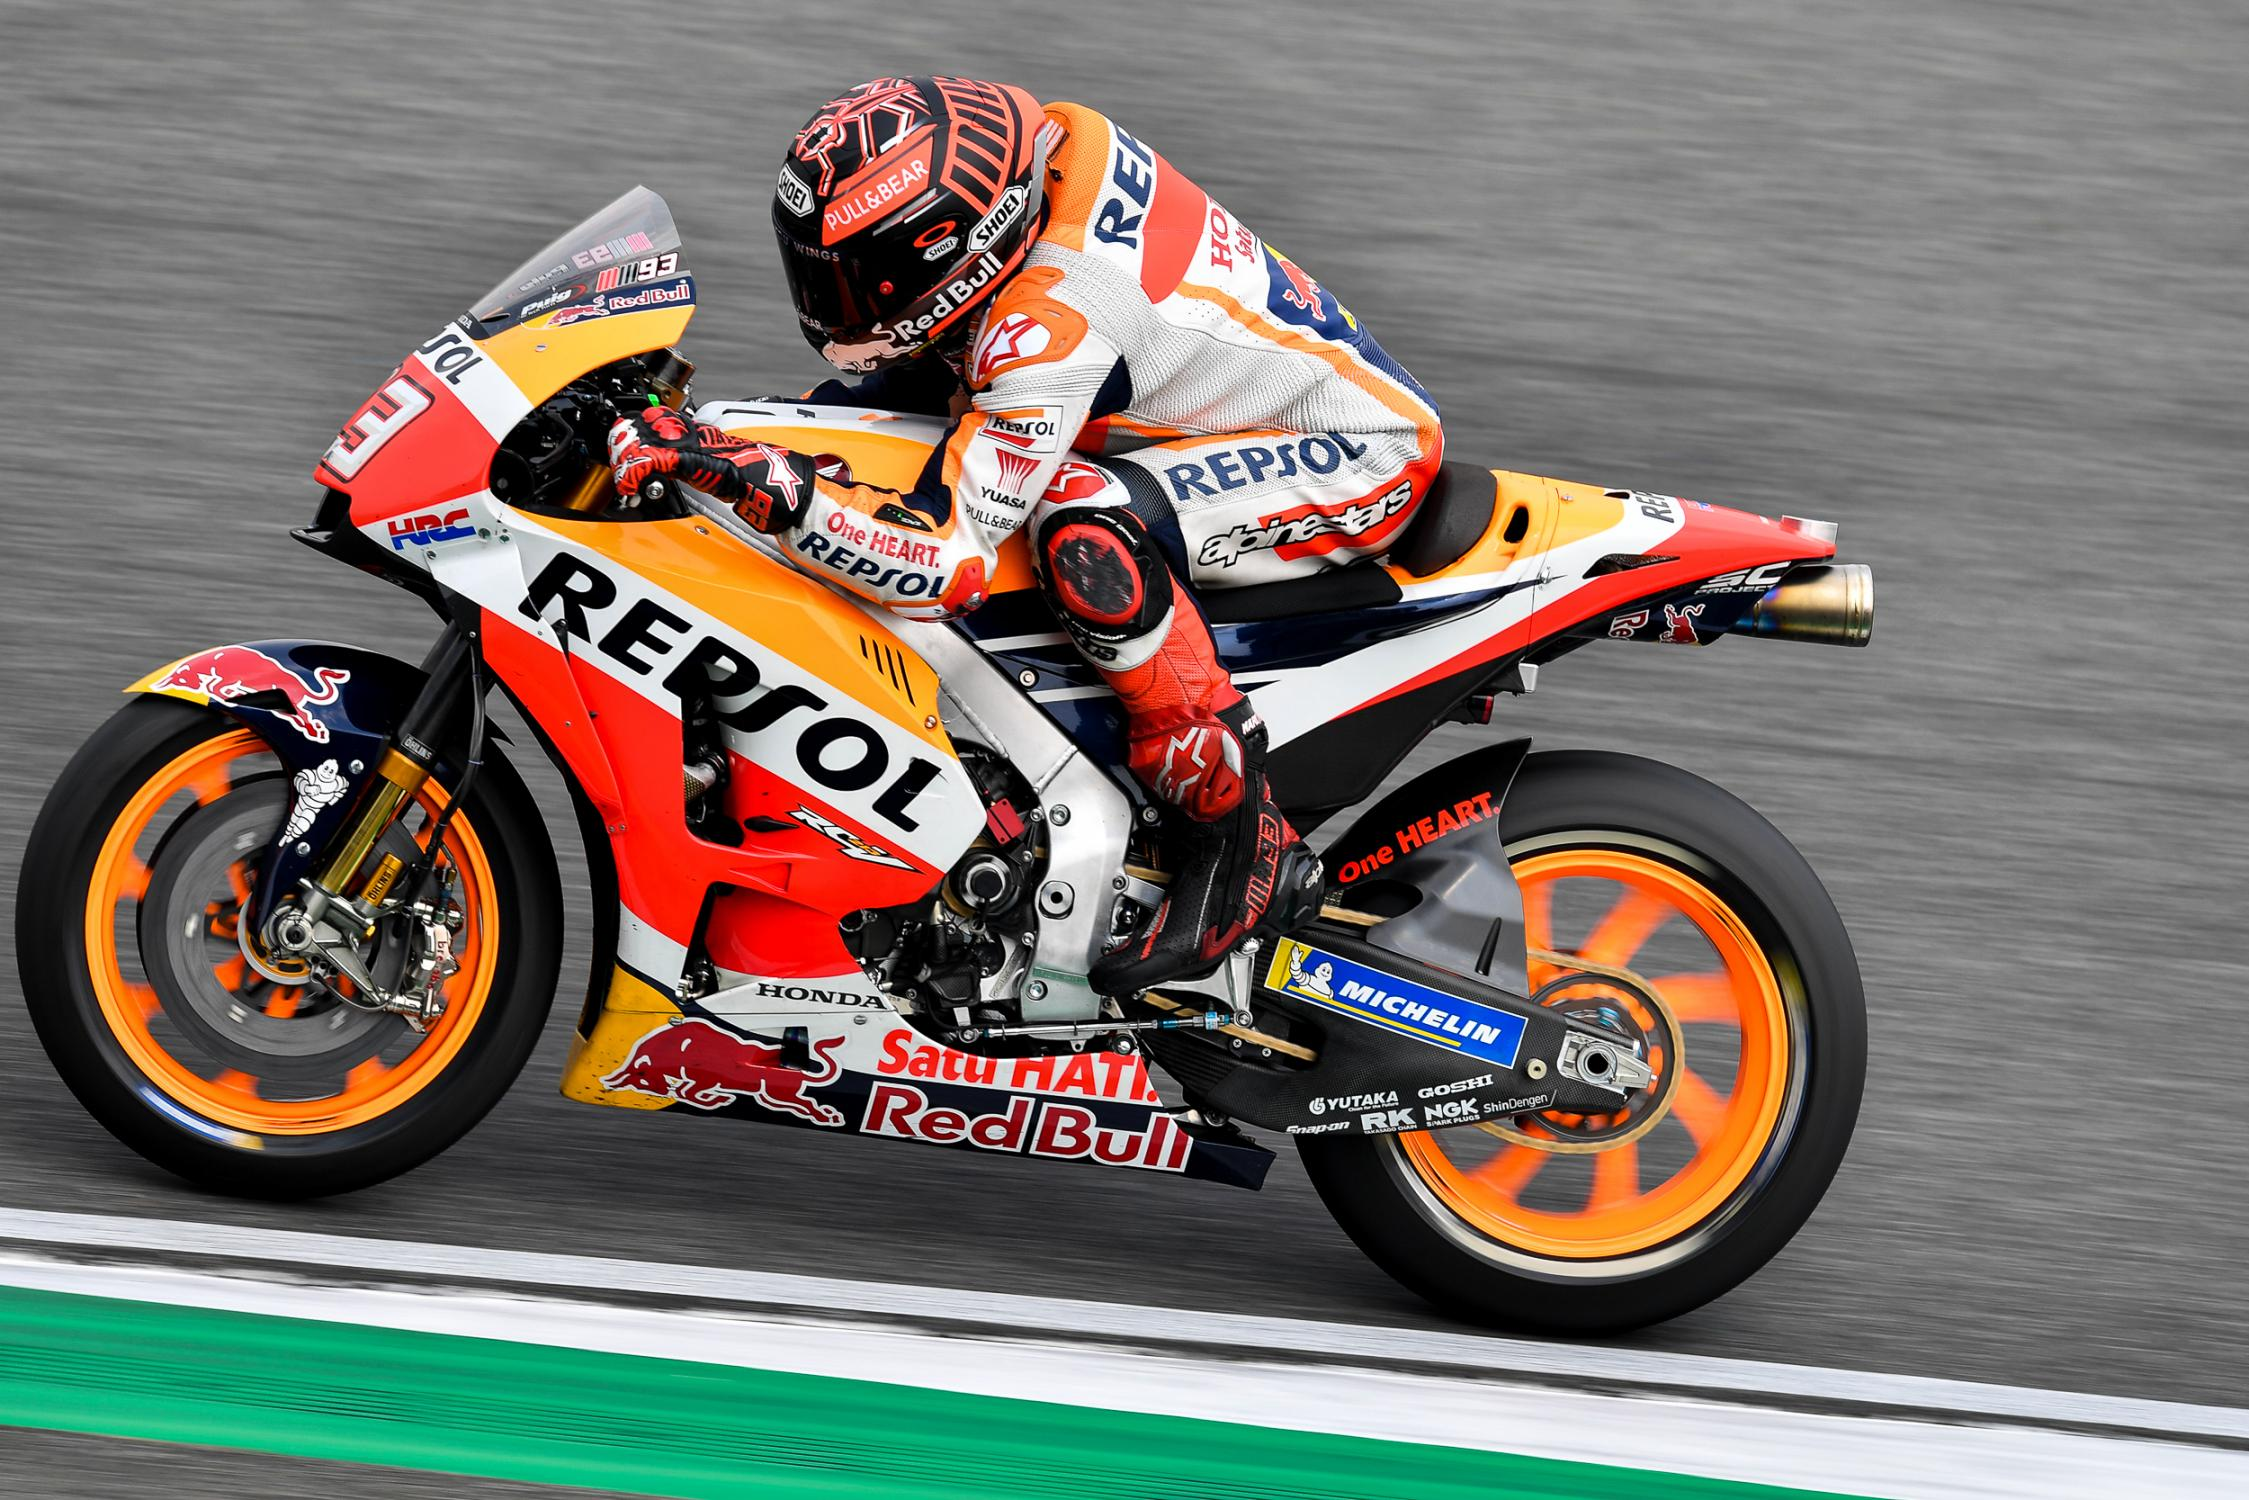 93-marc-marquez-esplg5_1233.gallery_full_top_fullscreen.jpg